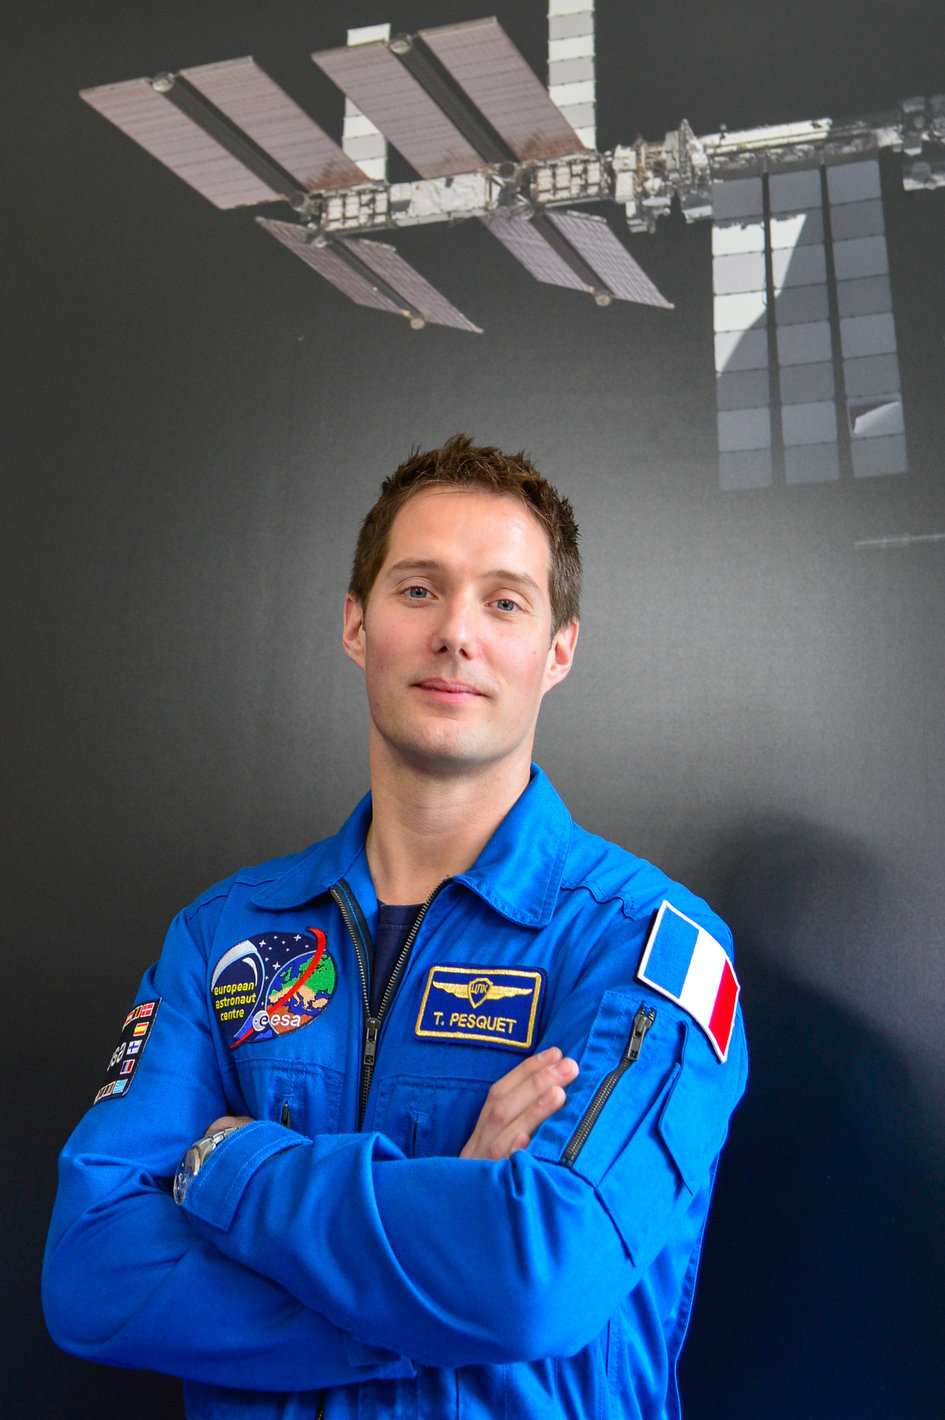 Thomas Pesquet has been assigned to a long-duration mission to the ISS